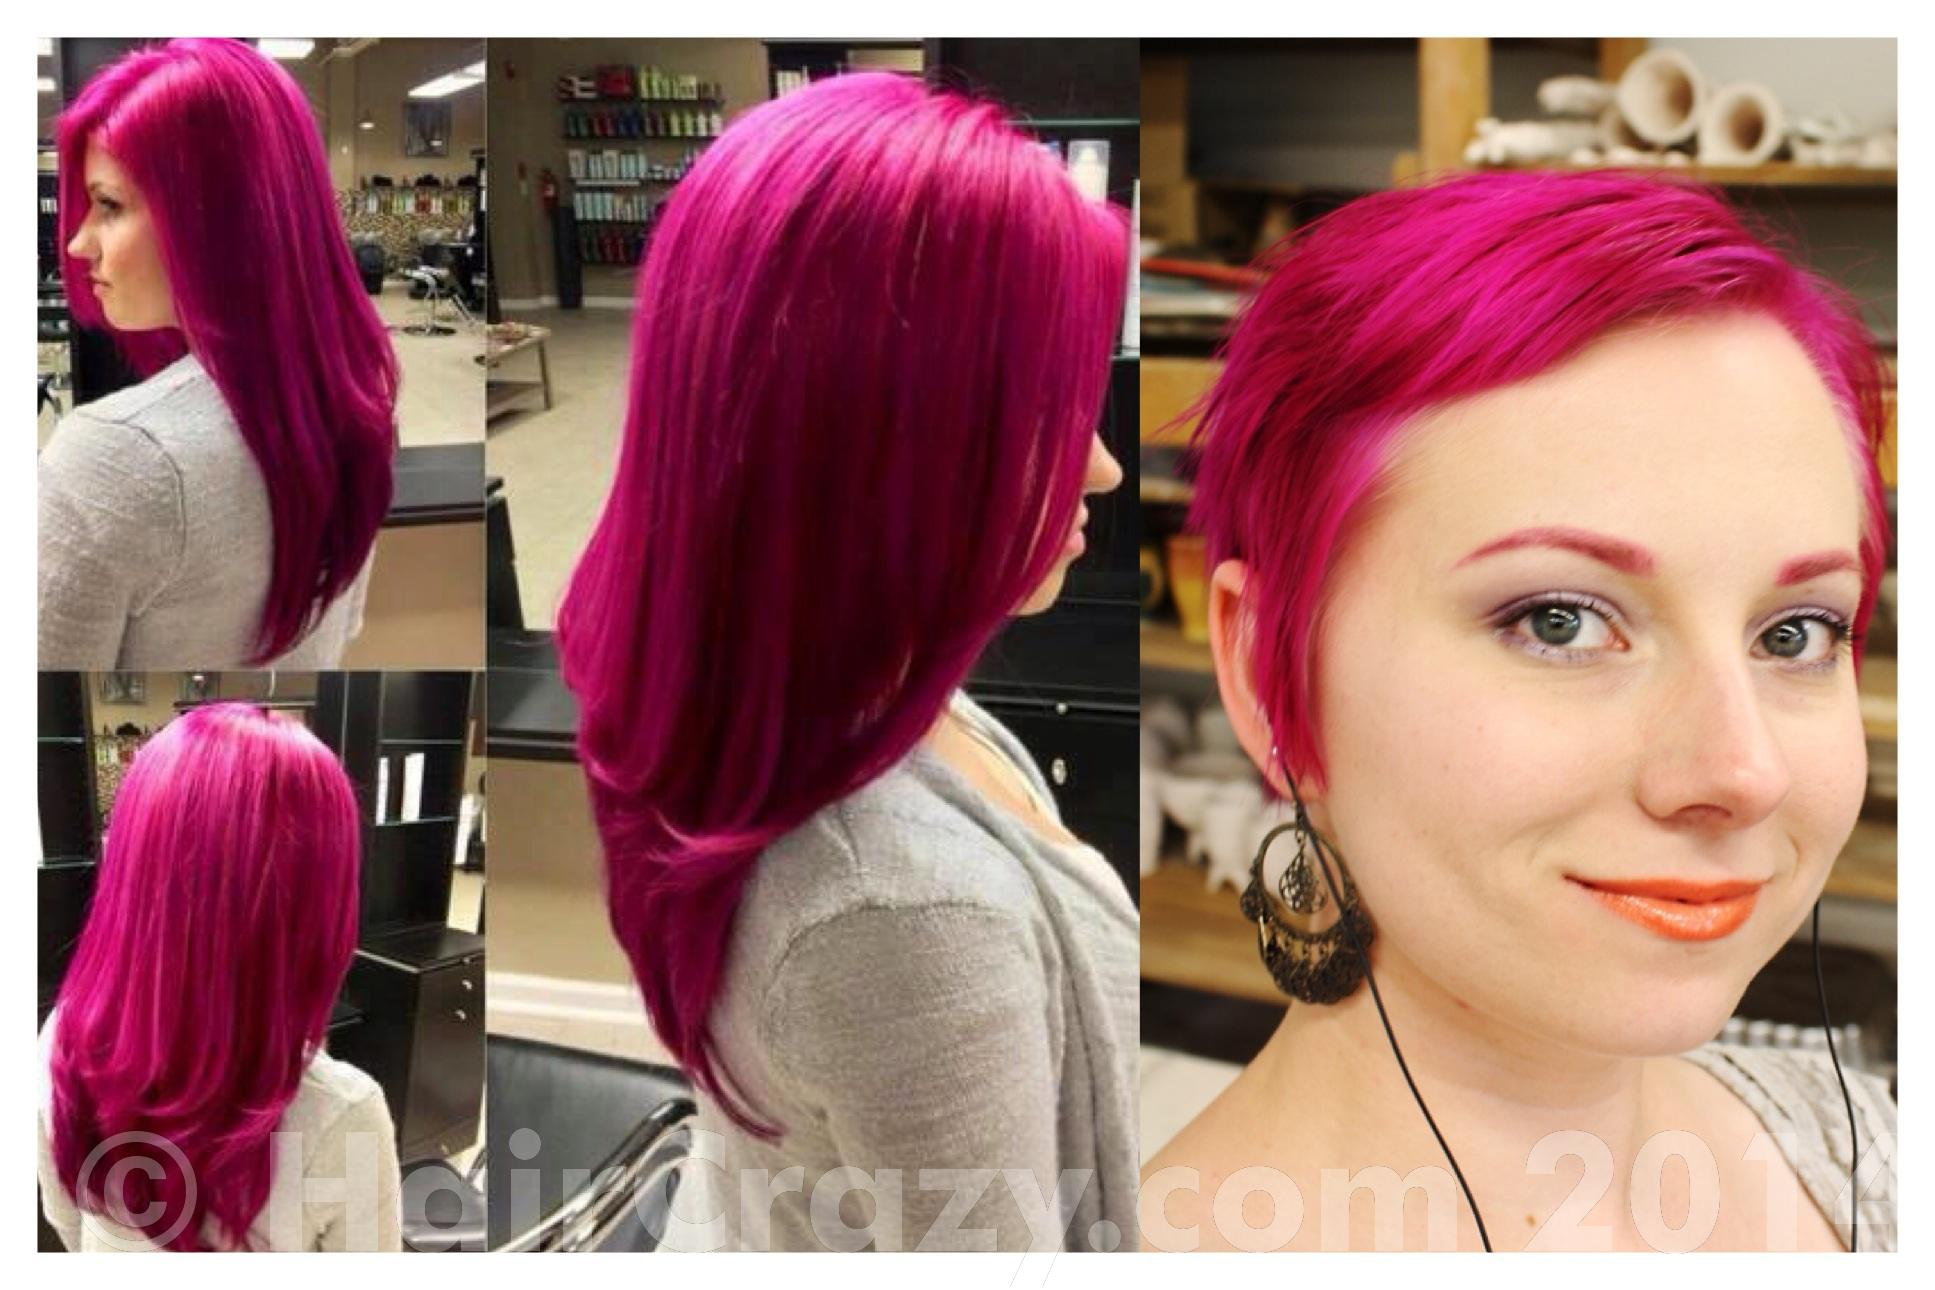 Bright Pink Hair Wearing